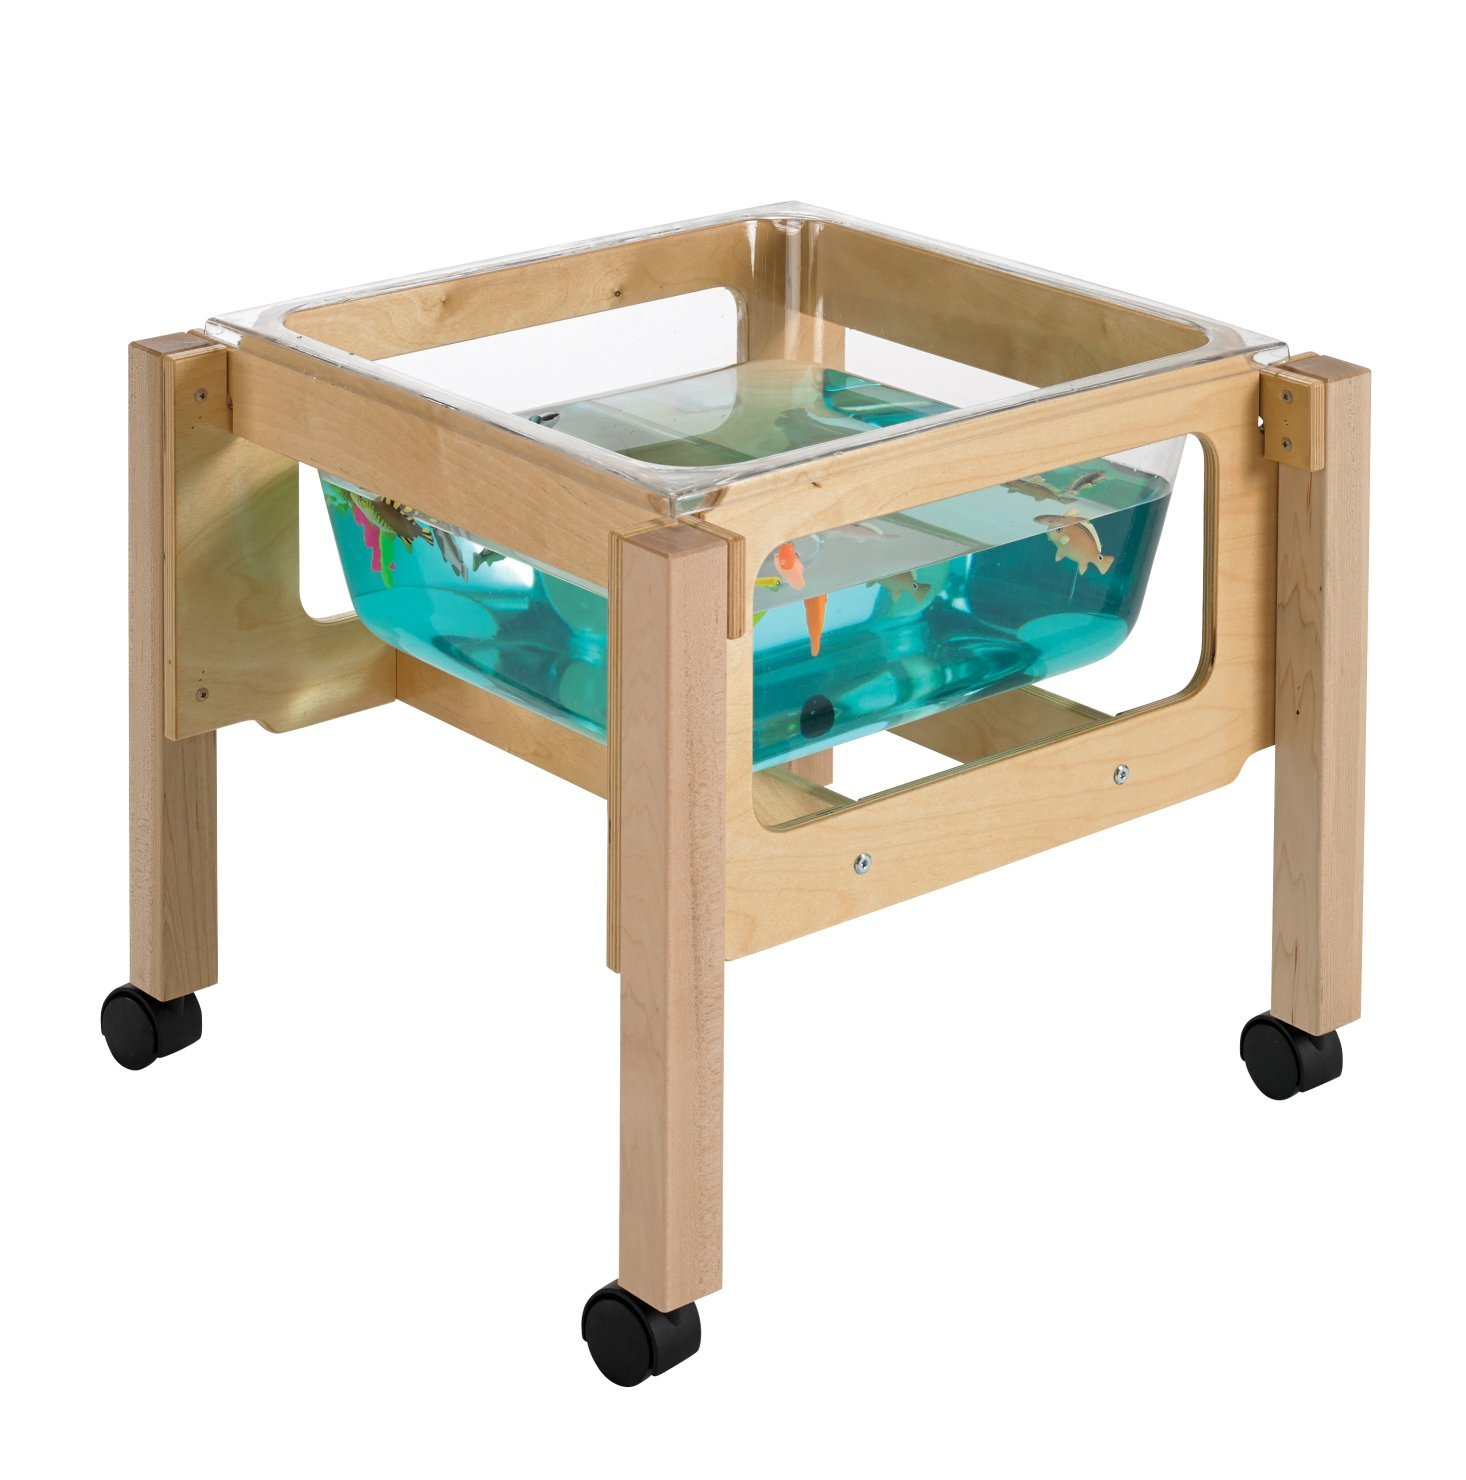 Childcraft 1491071 Toddler Sand and Water Table with Tub, 21'' Height, 23.25'' Width, 23.25'' Length, Natural Wood